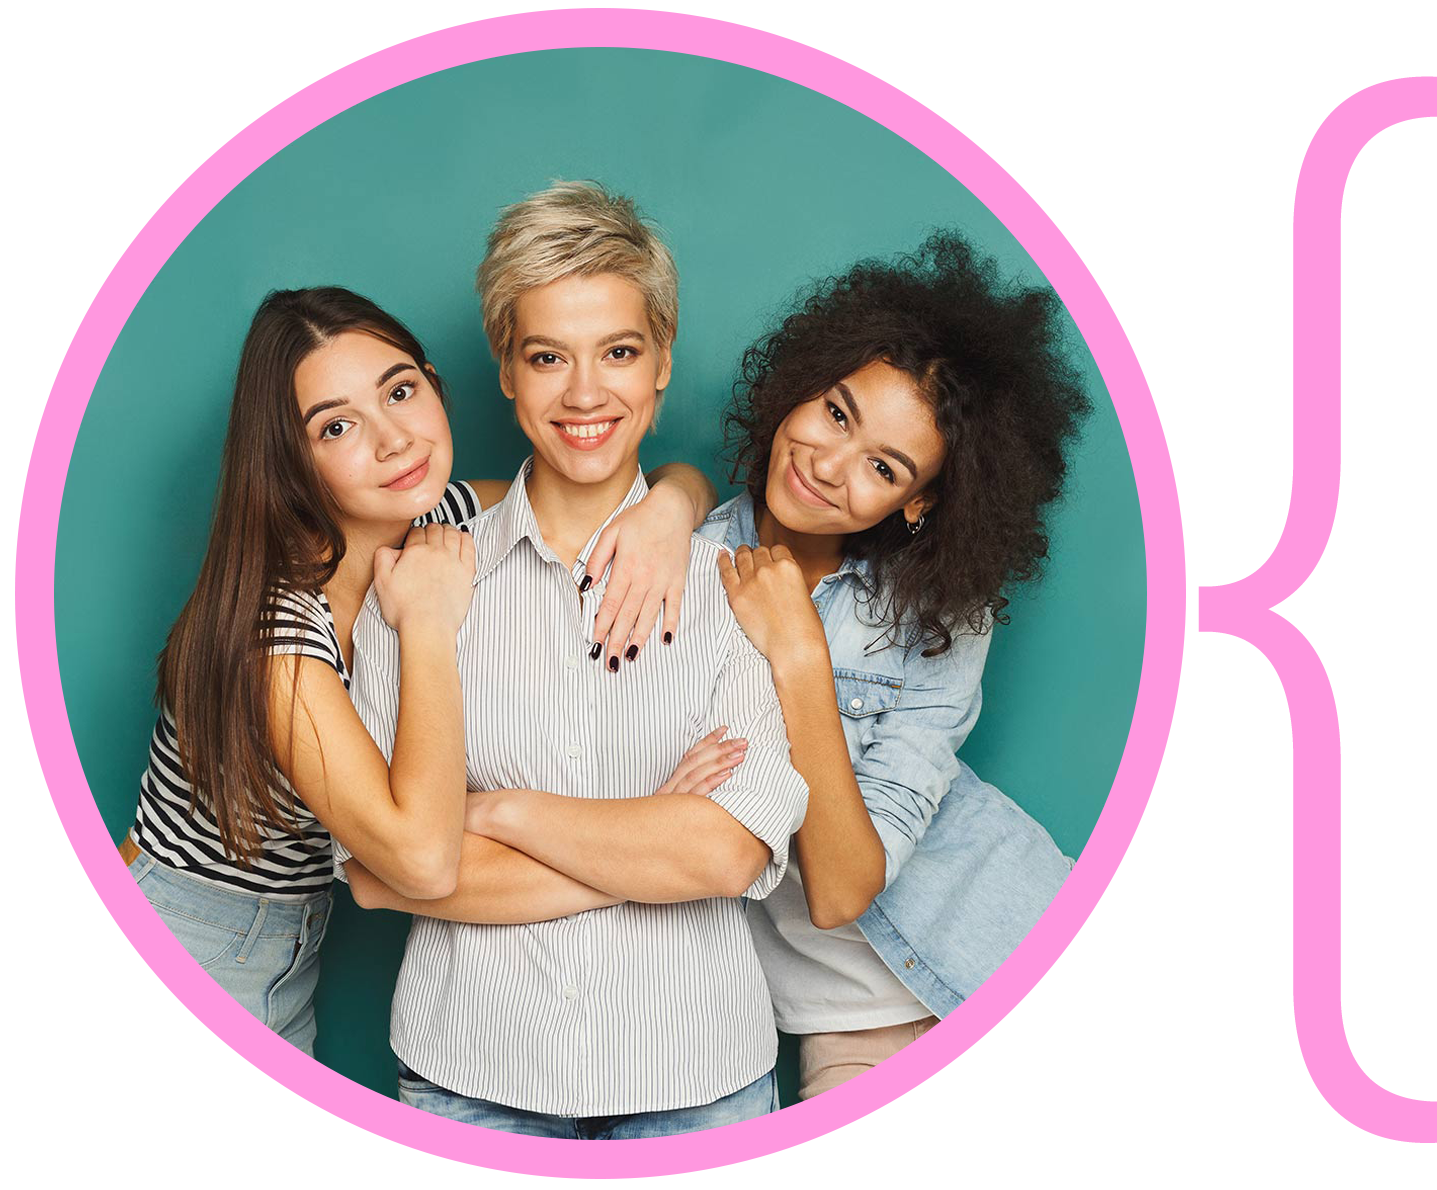 Image of three young women posing together in front of a blue background smiling